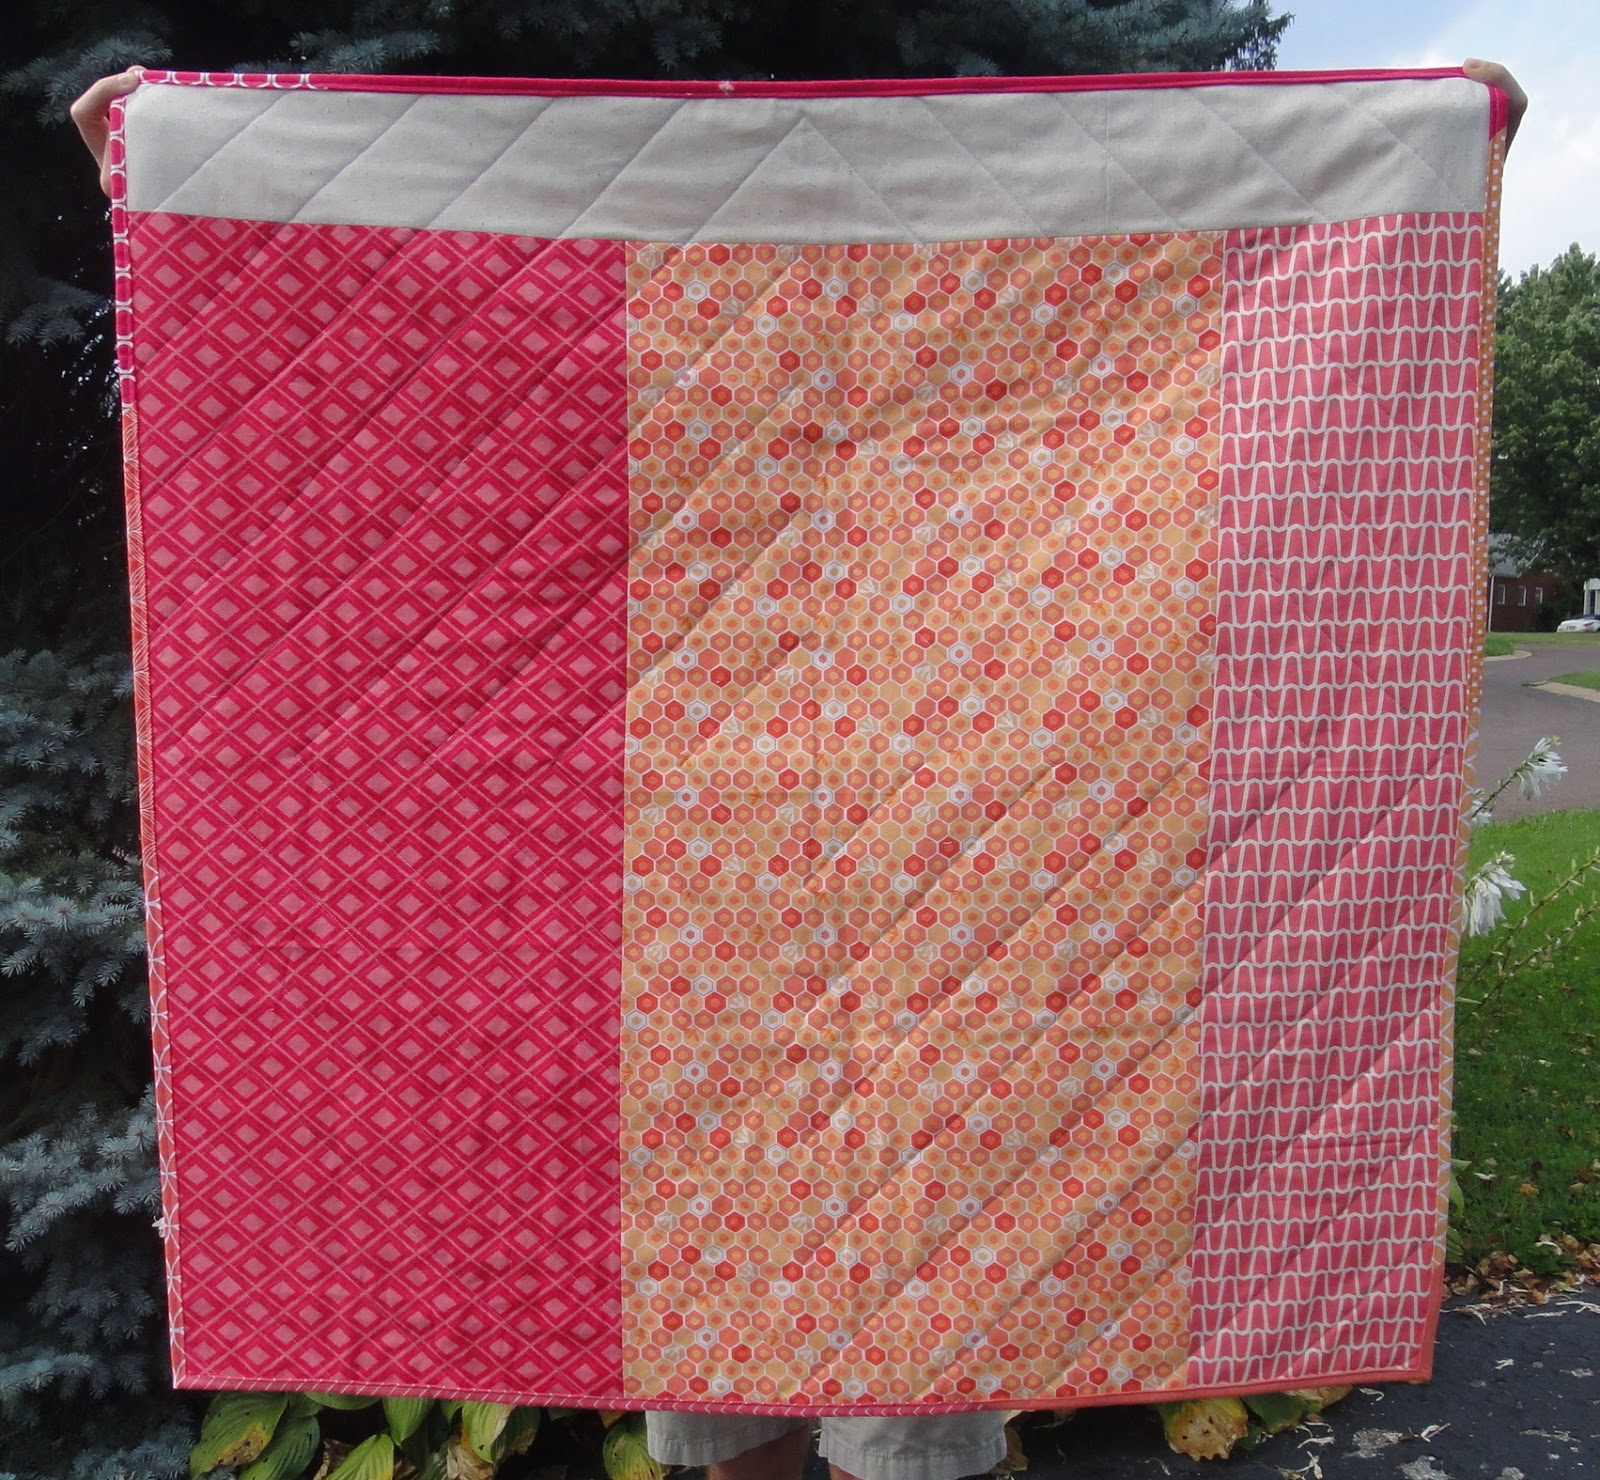 http://ablueskykindoflife.blogspot.com/2014/08/flippin-triangle-baby-quilt-finished.html